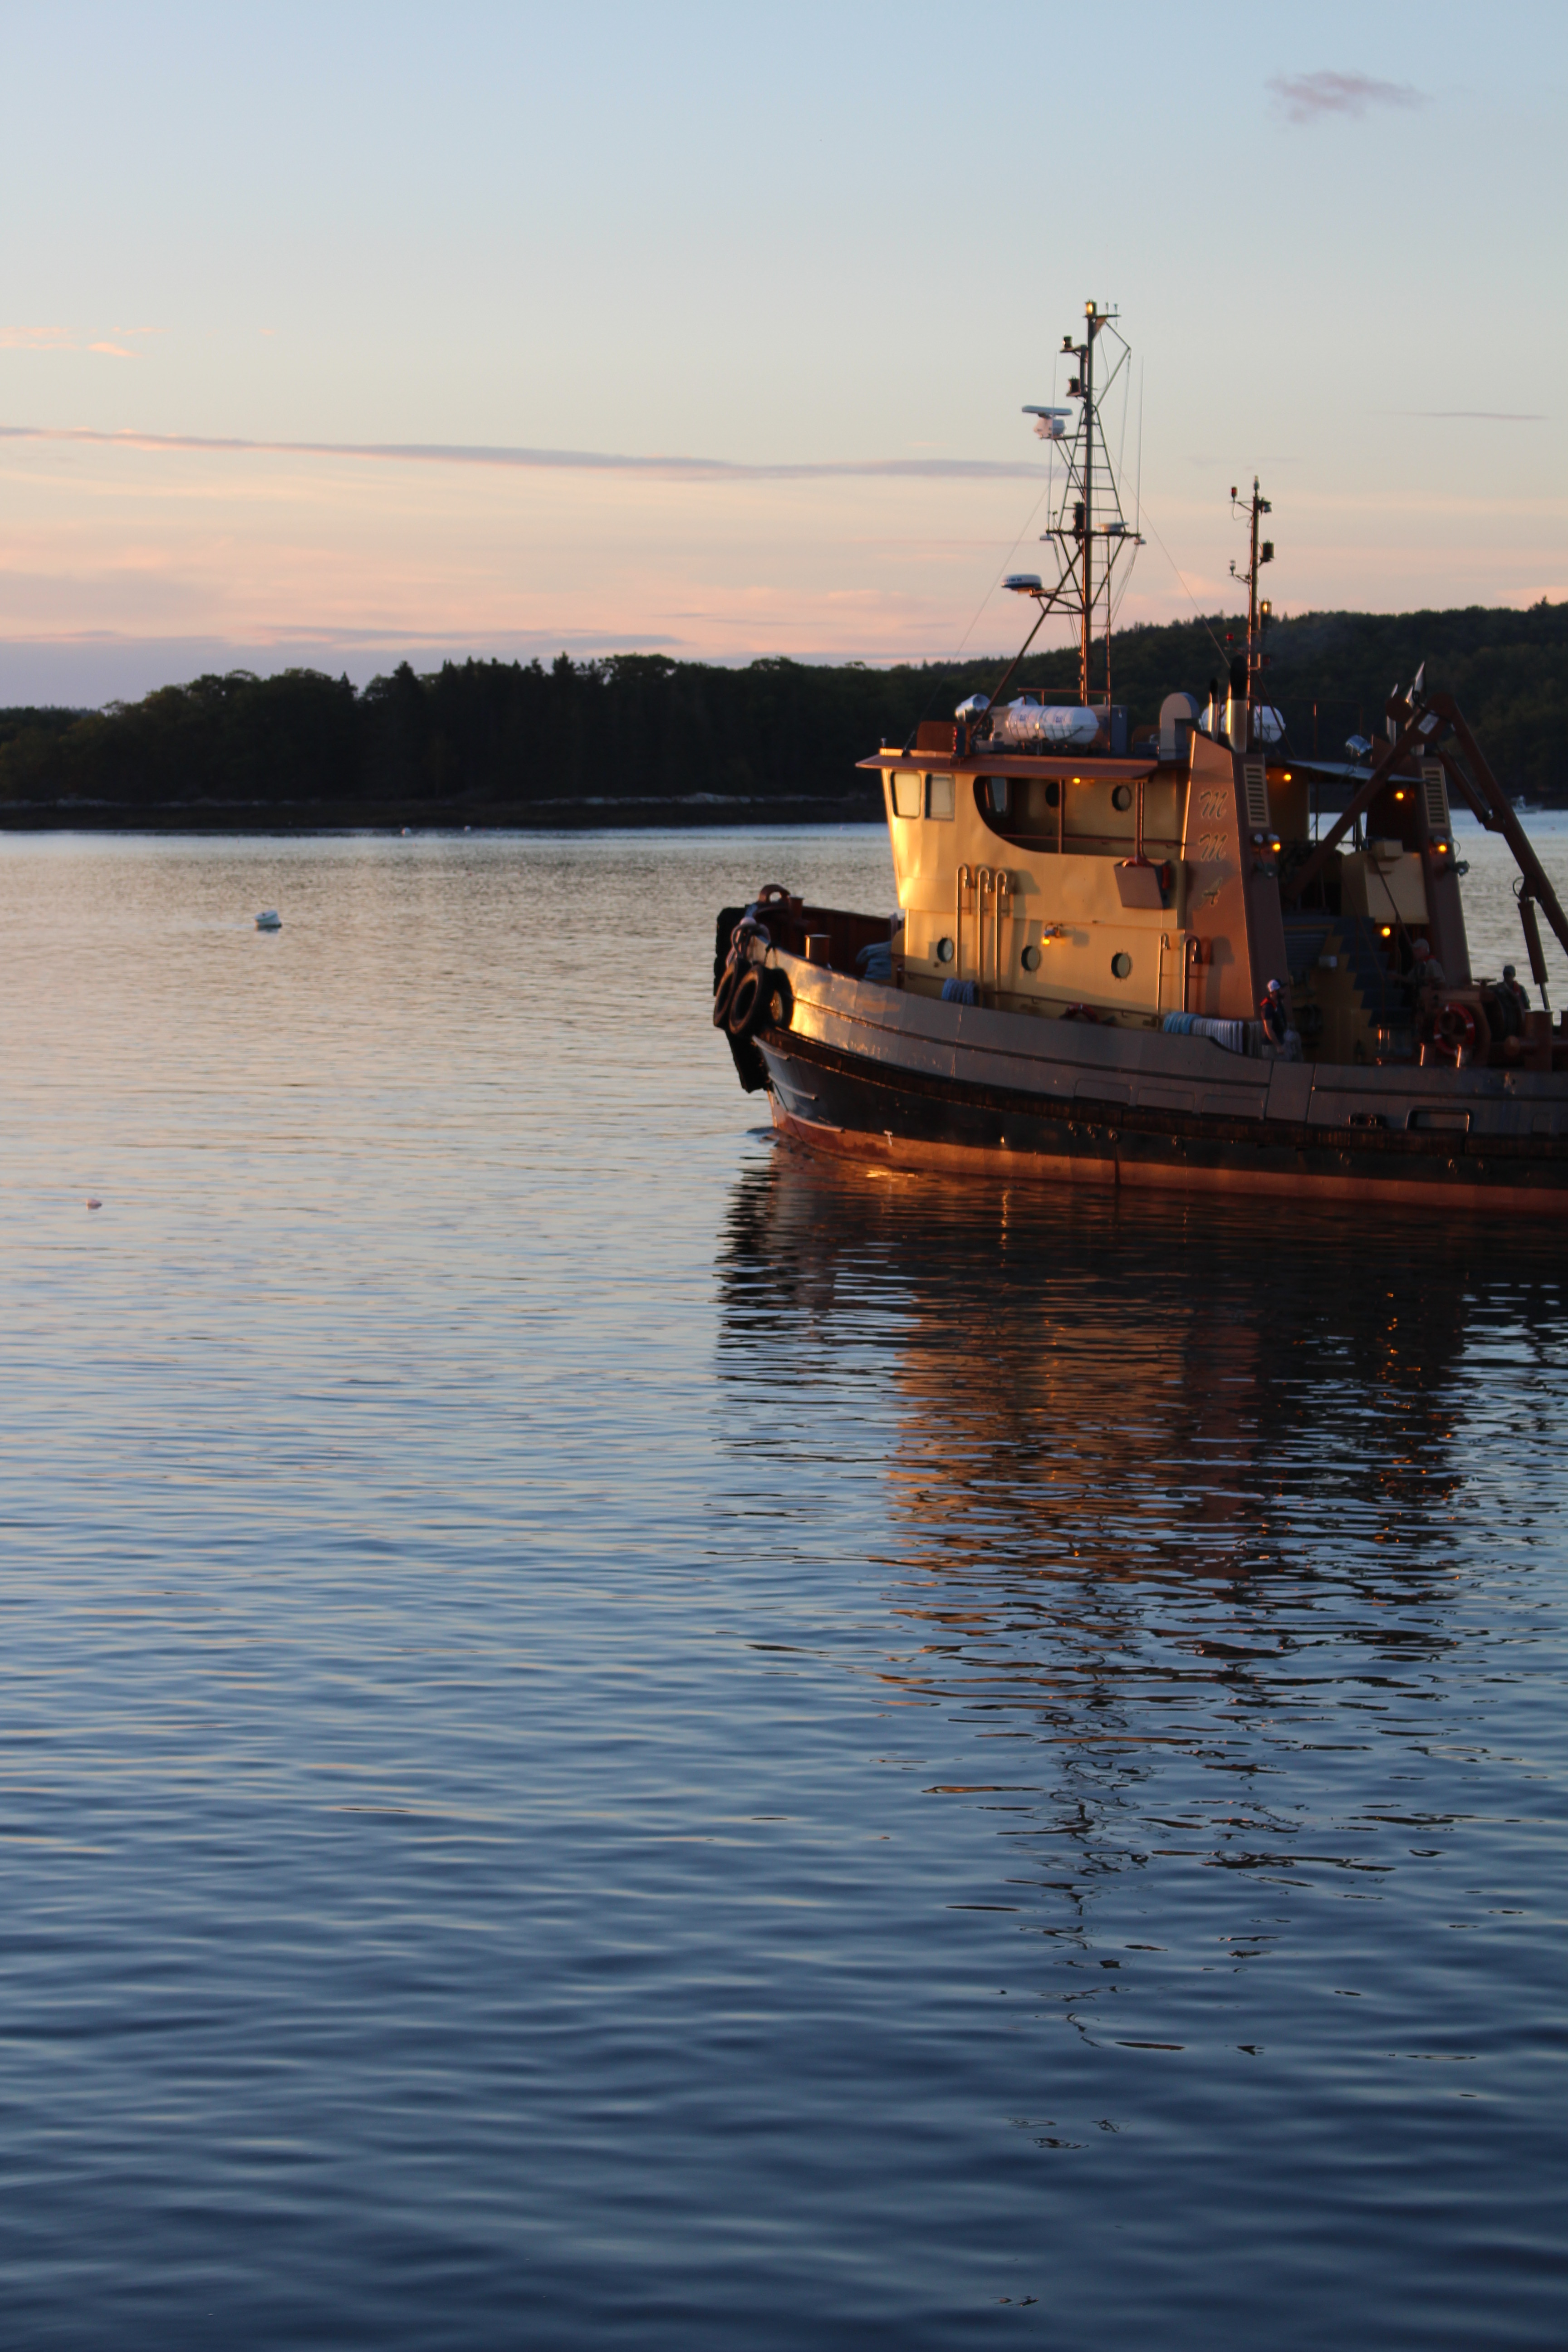 Facing the day, awash in morning light: the Maine Maritime Academy teaching boat in Castine harbor